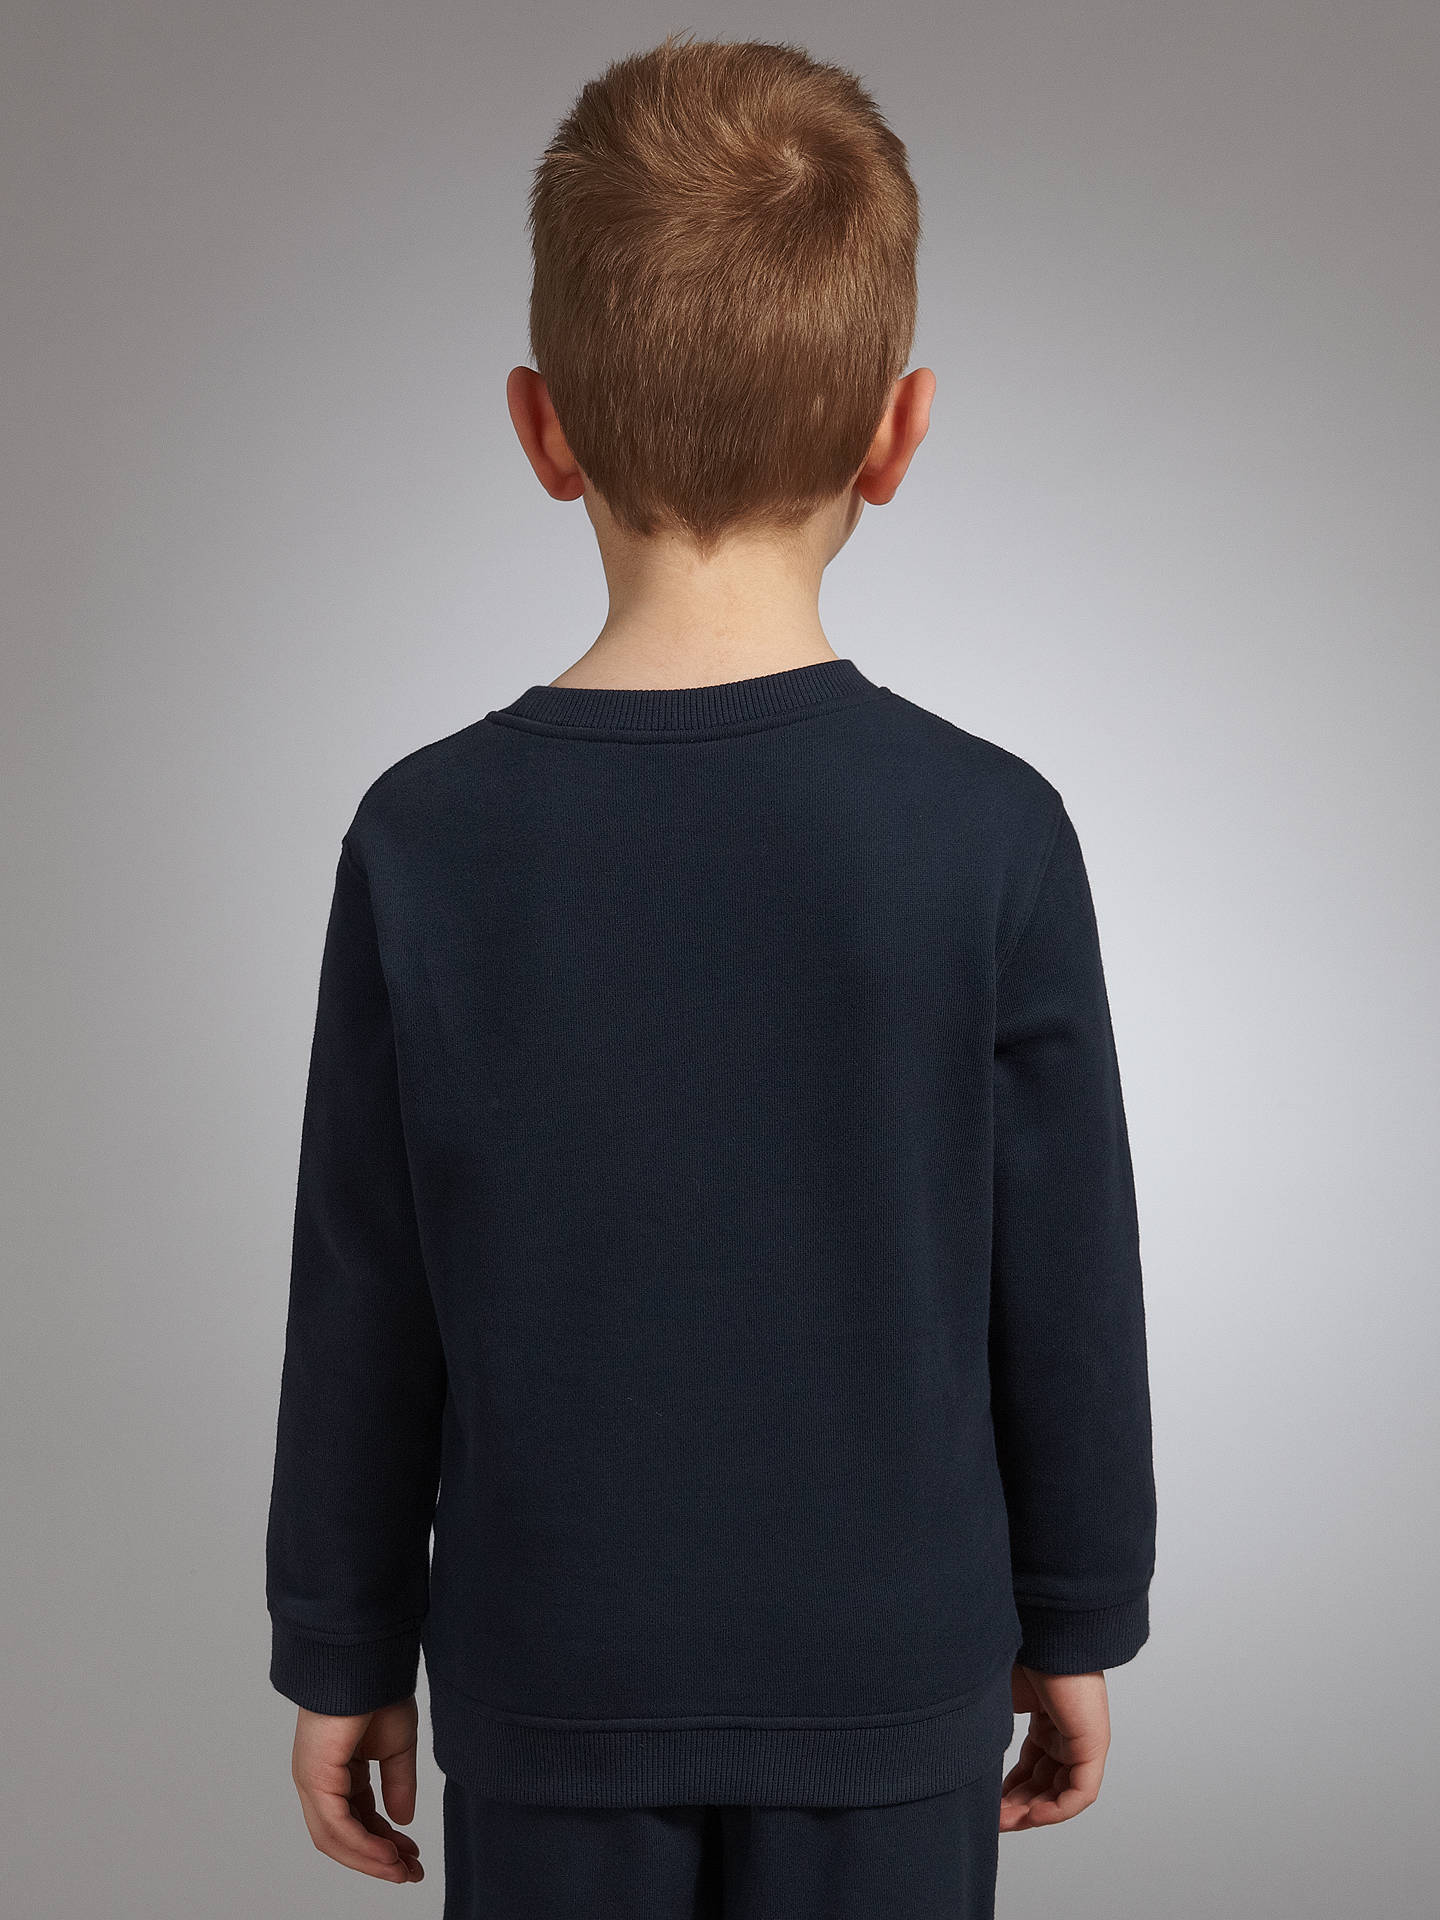 Buy John Lewis & Partners School Sweatshirt, Navy, Chest 38 Online at johnlewis.com